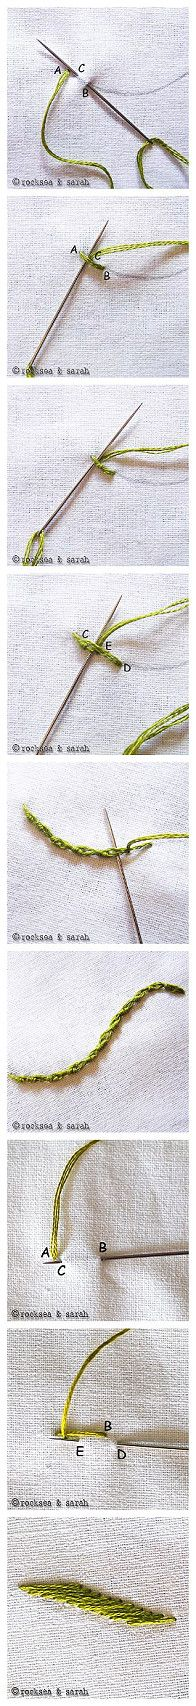 Embroidery stitches.